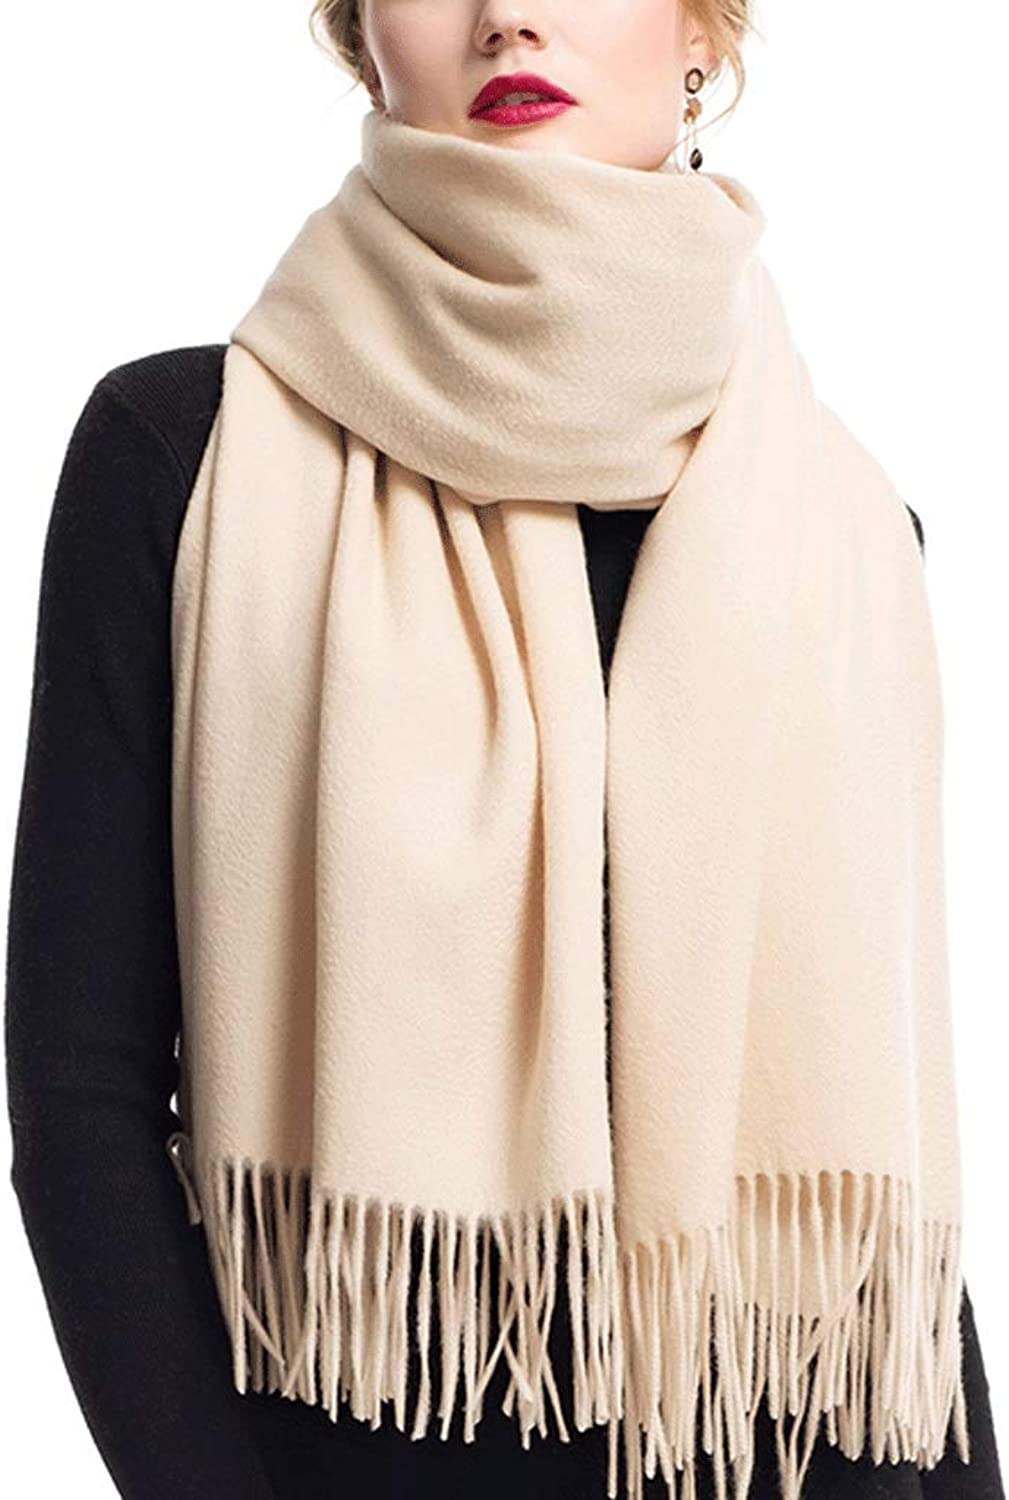 WXL Winter Scarf Thicken Oversized Shawl Woman Soft Elegant Classic Scarves 200cm×70cm V (color   Camel)